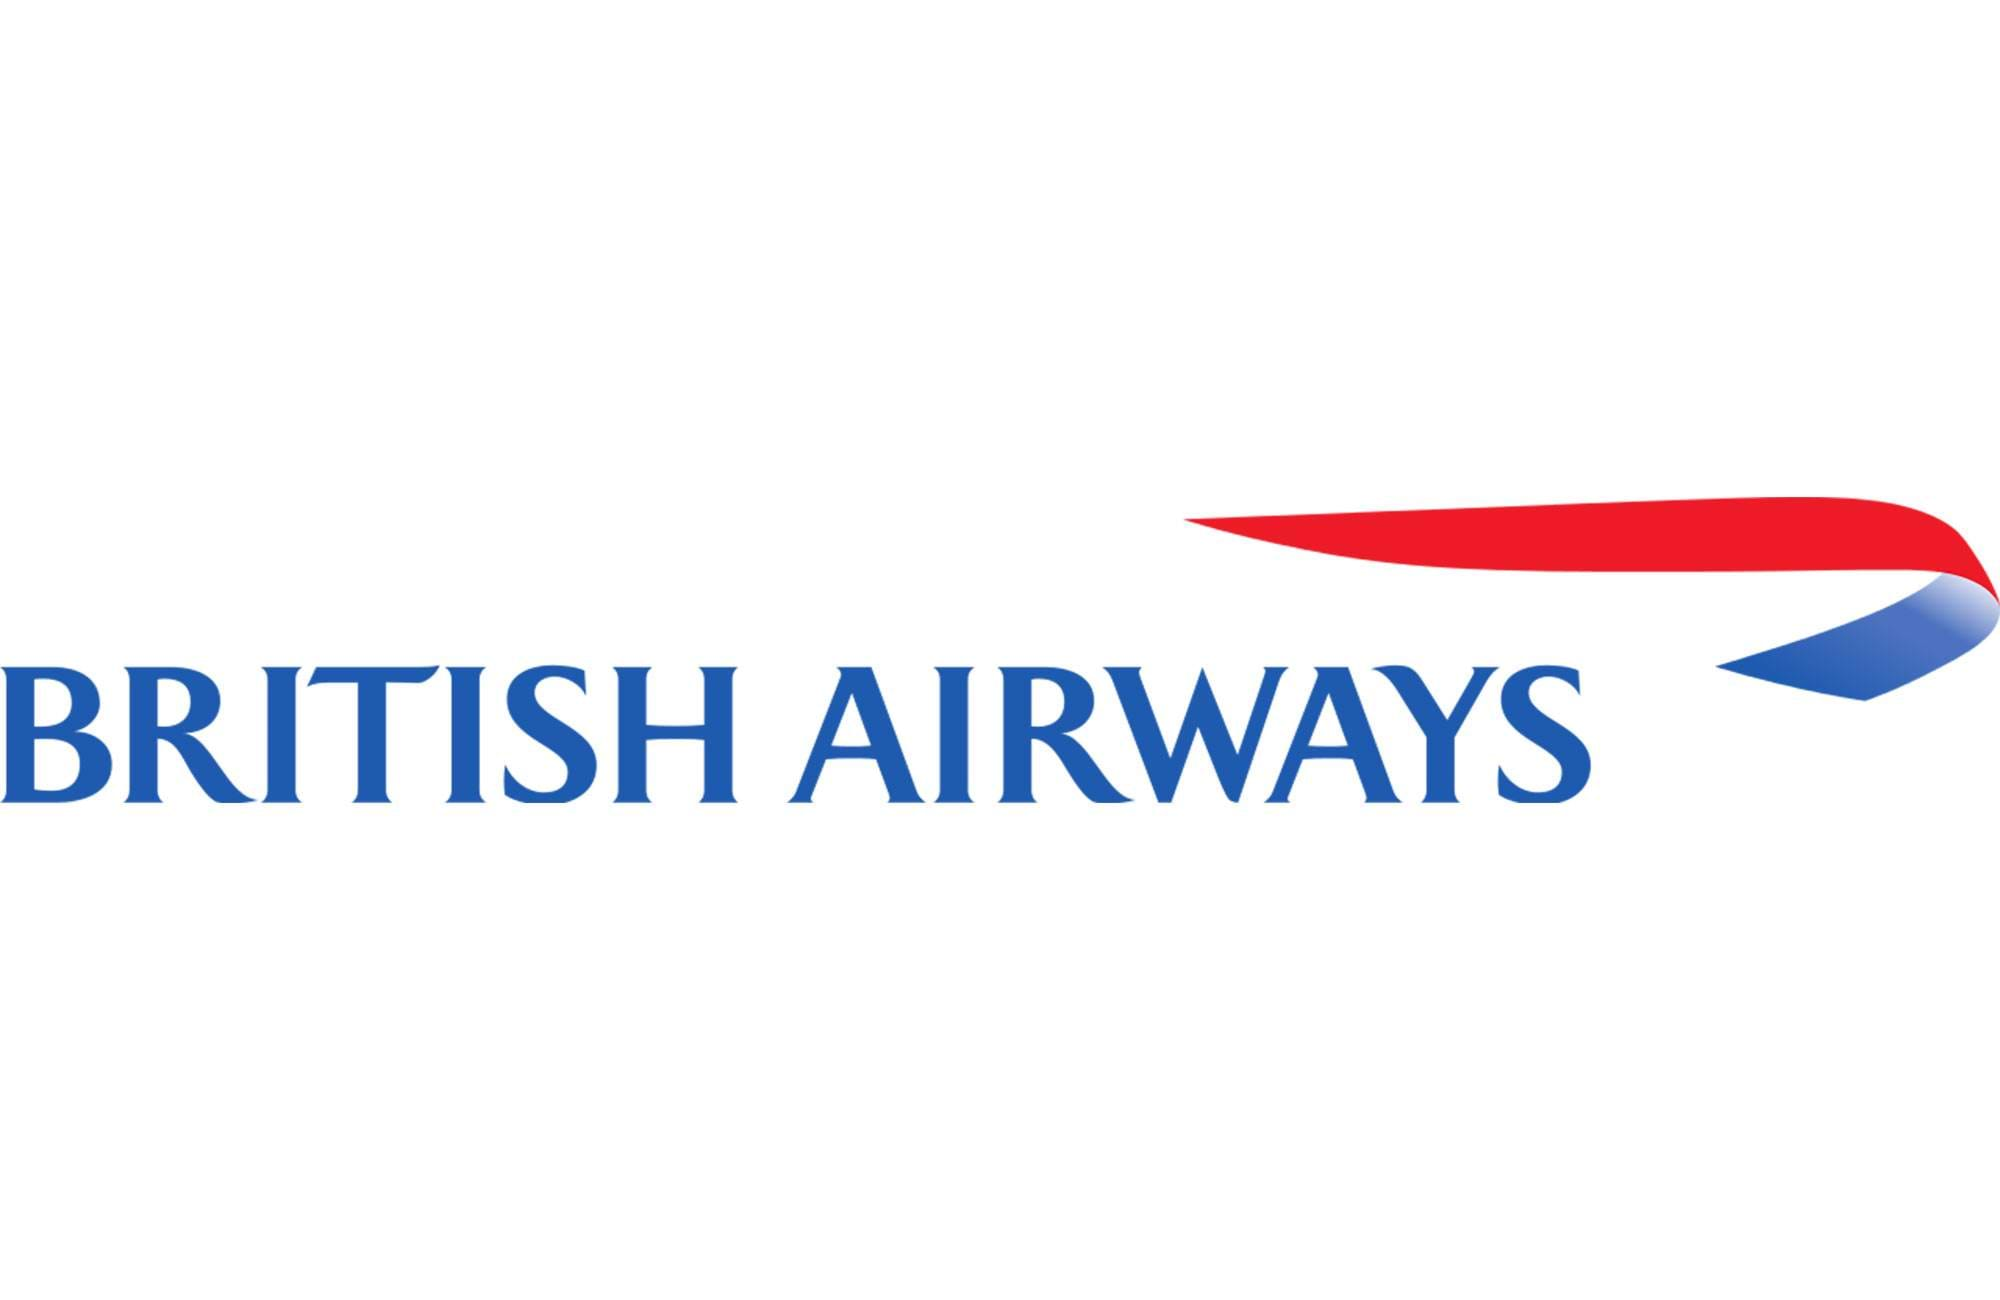 British airways logo - KILROY